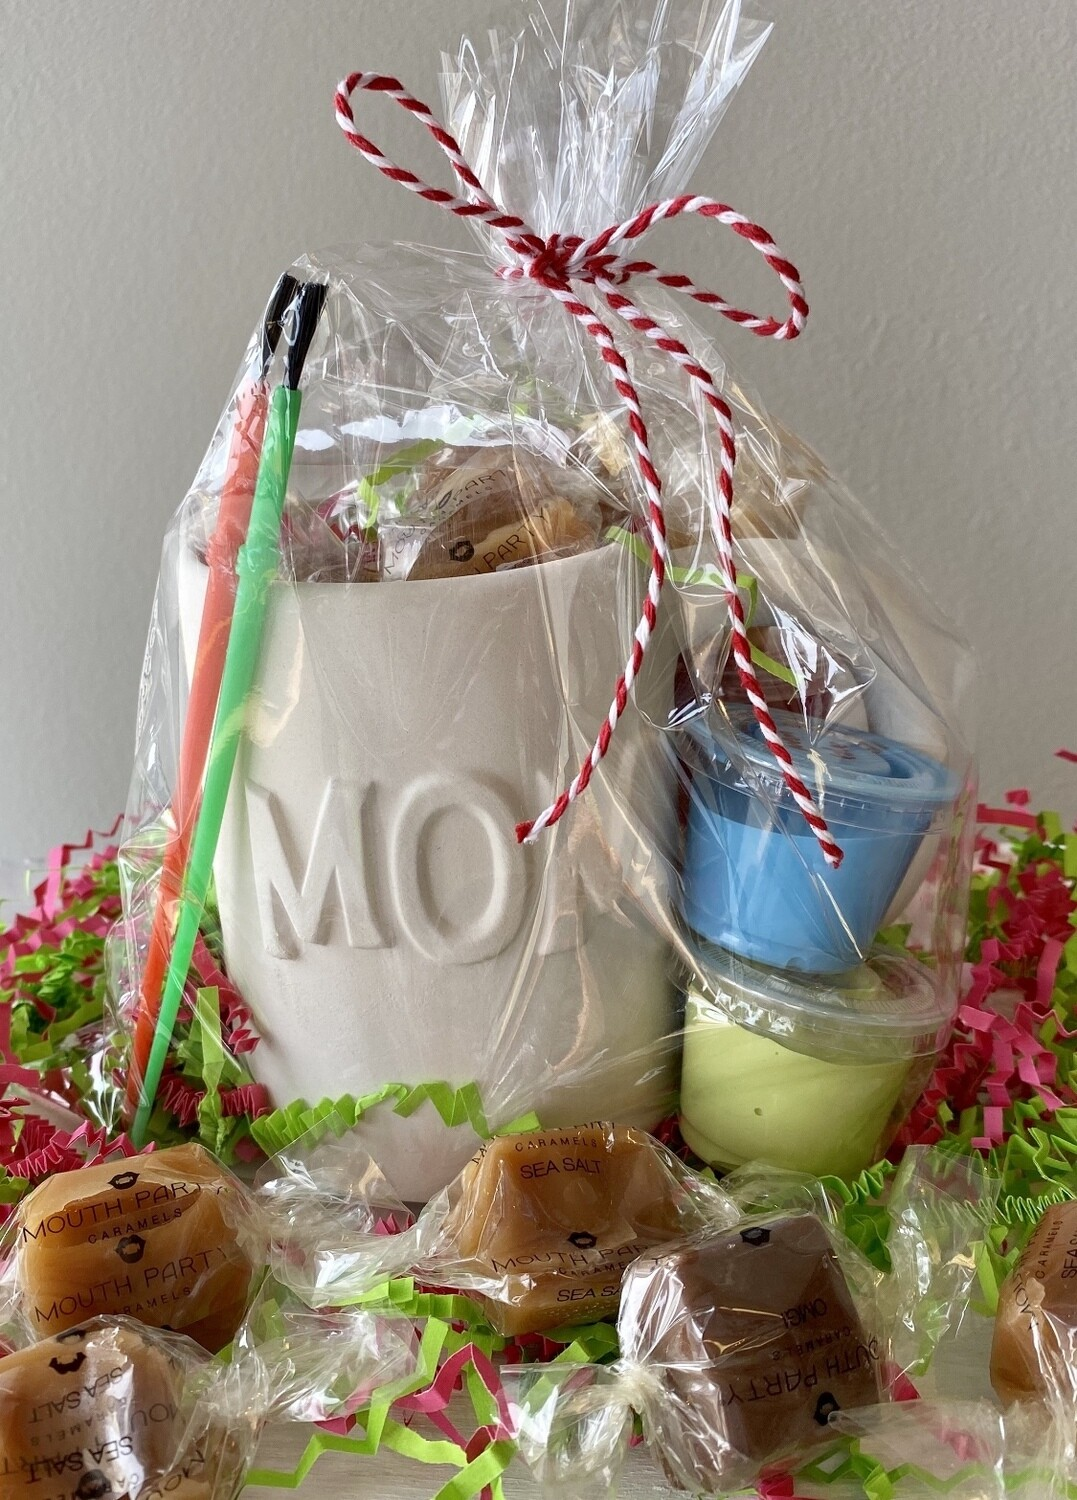 Take Home Mother's Day Gift!  Mom Mug with Mouth Party Caramels and Glazes - Pick up at Pet Depot